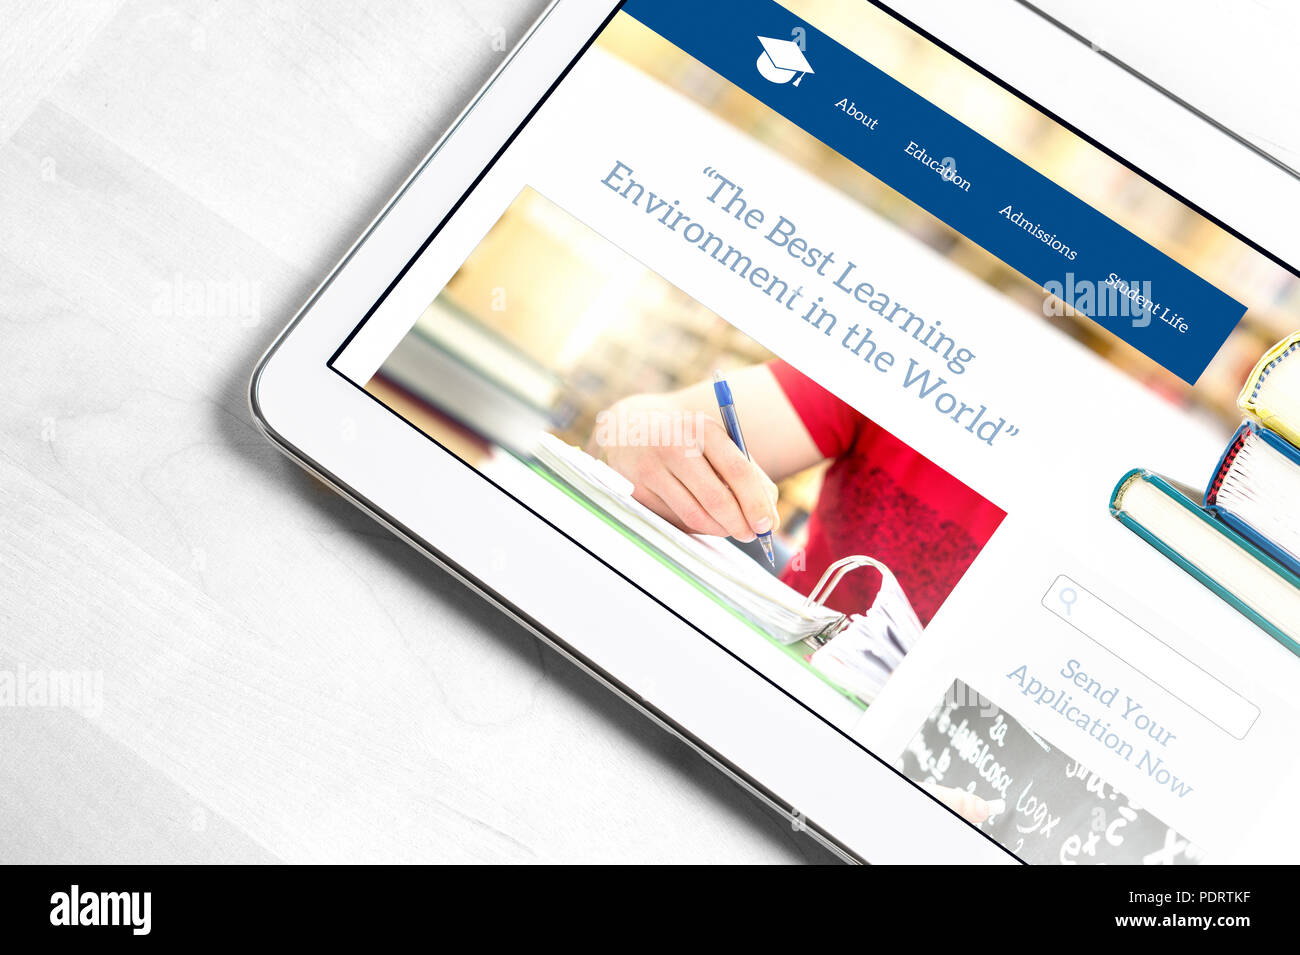 School website homepage design on tablet screen. College application or applying for University concept. Searching information about education. - Stock Image